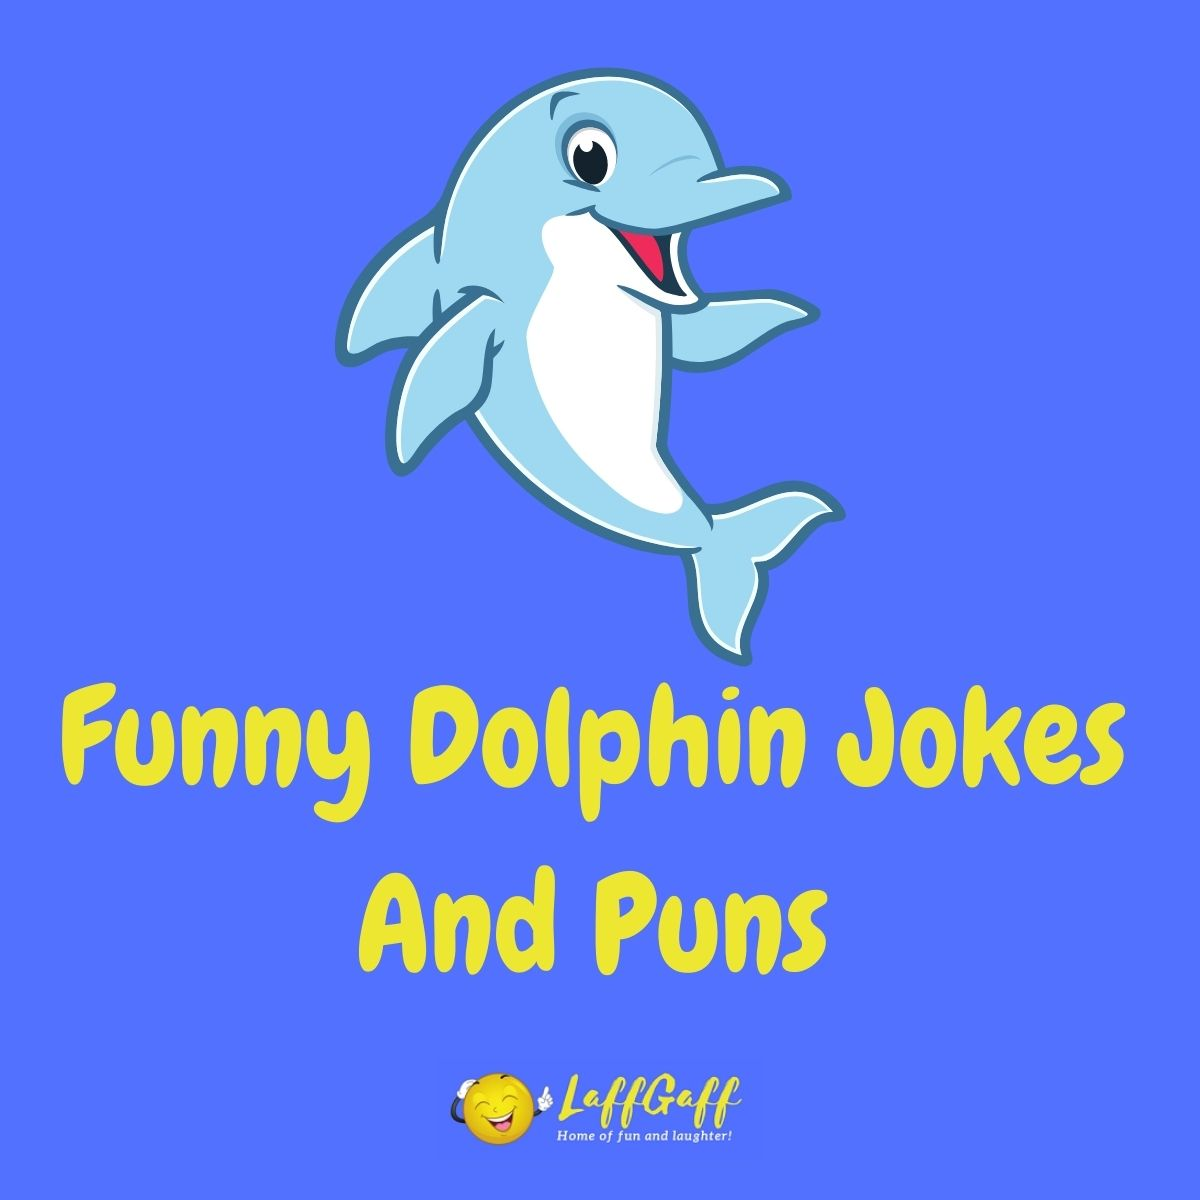 Featured image for a page of funny dolphin jokes and puns.